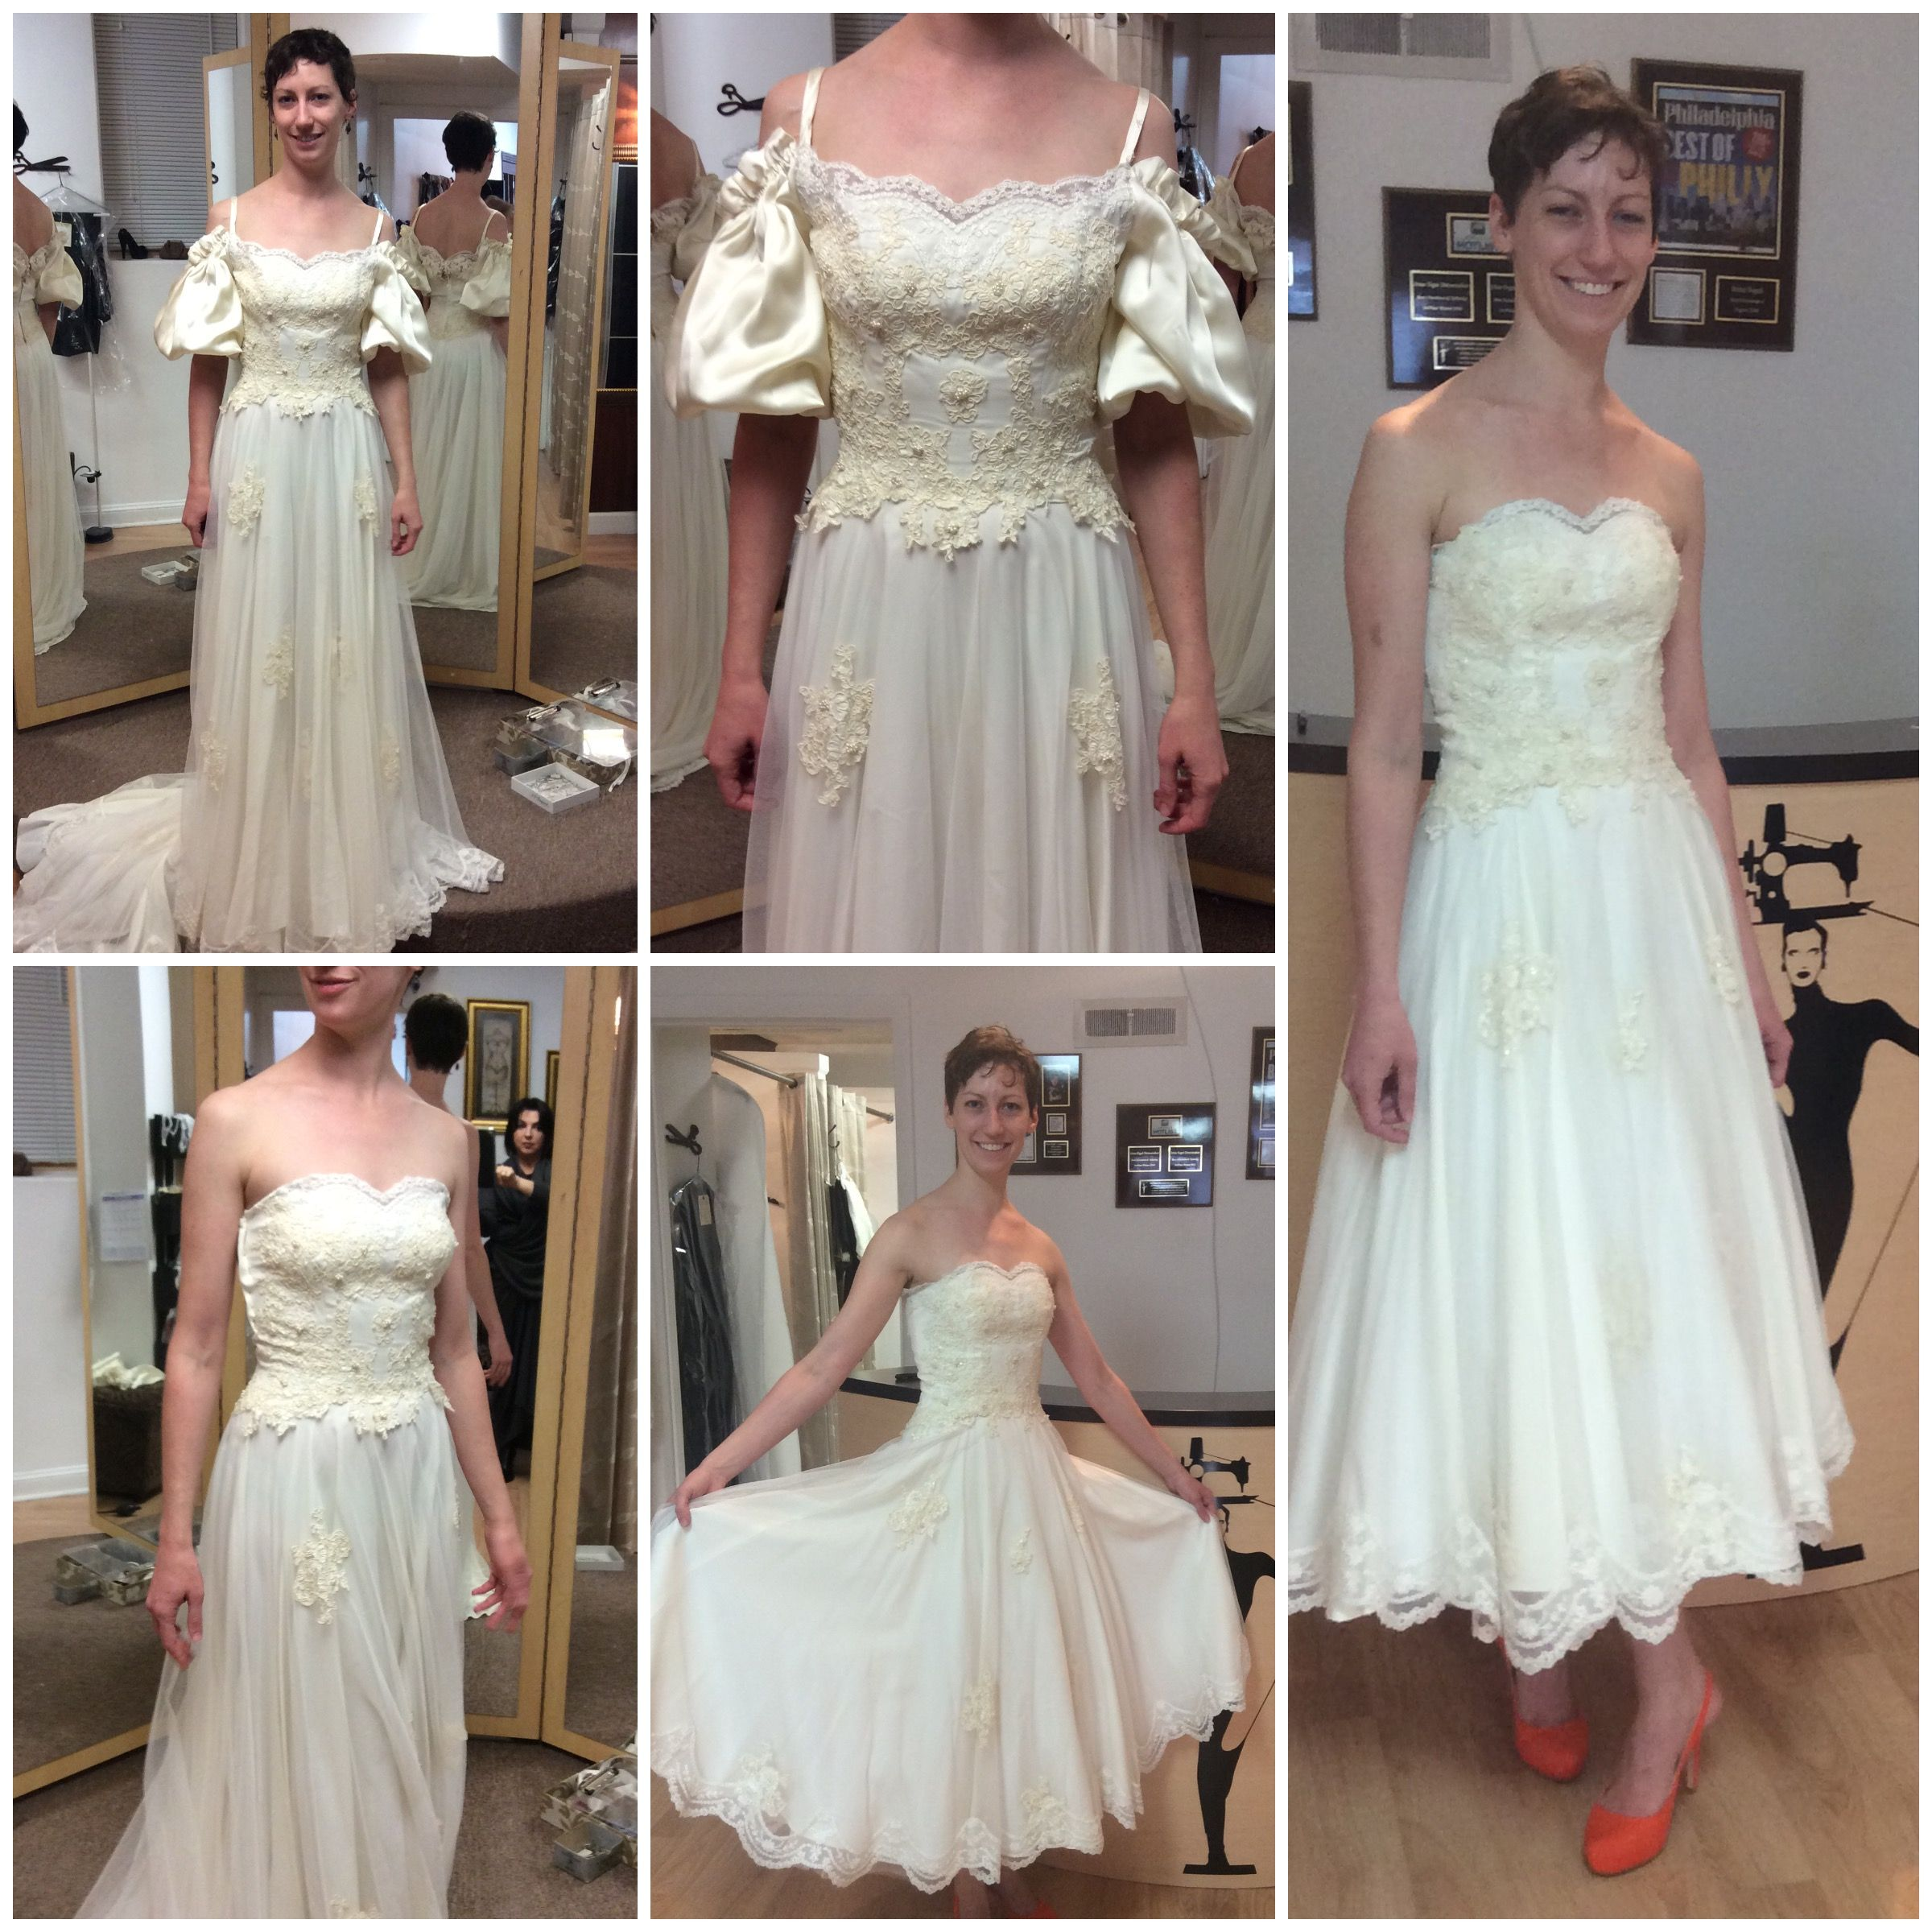 Reconstruction Of The 18th Century Family Heirloom Wedding Gown At Irina Sigal Dressmaker Wedding Gown Alterations Wedding Dress Alterations Bridal Alterations